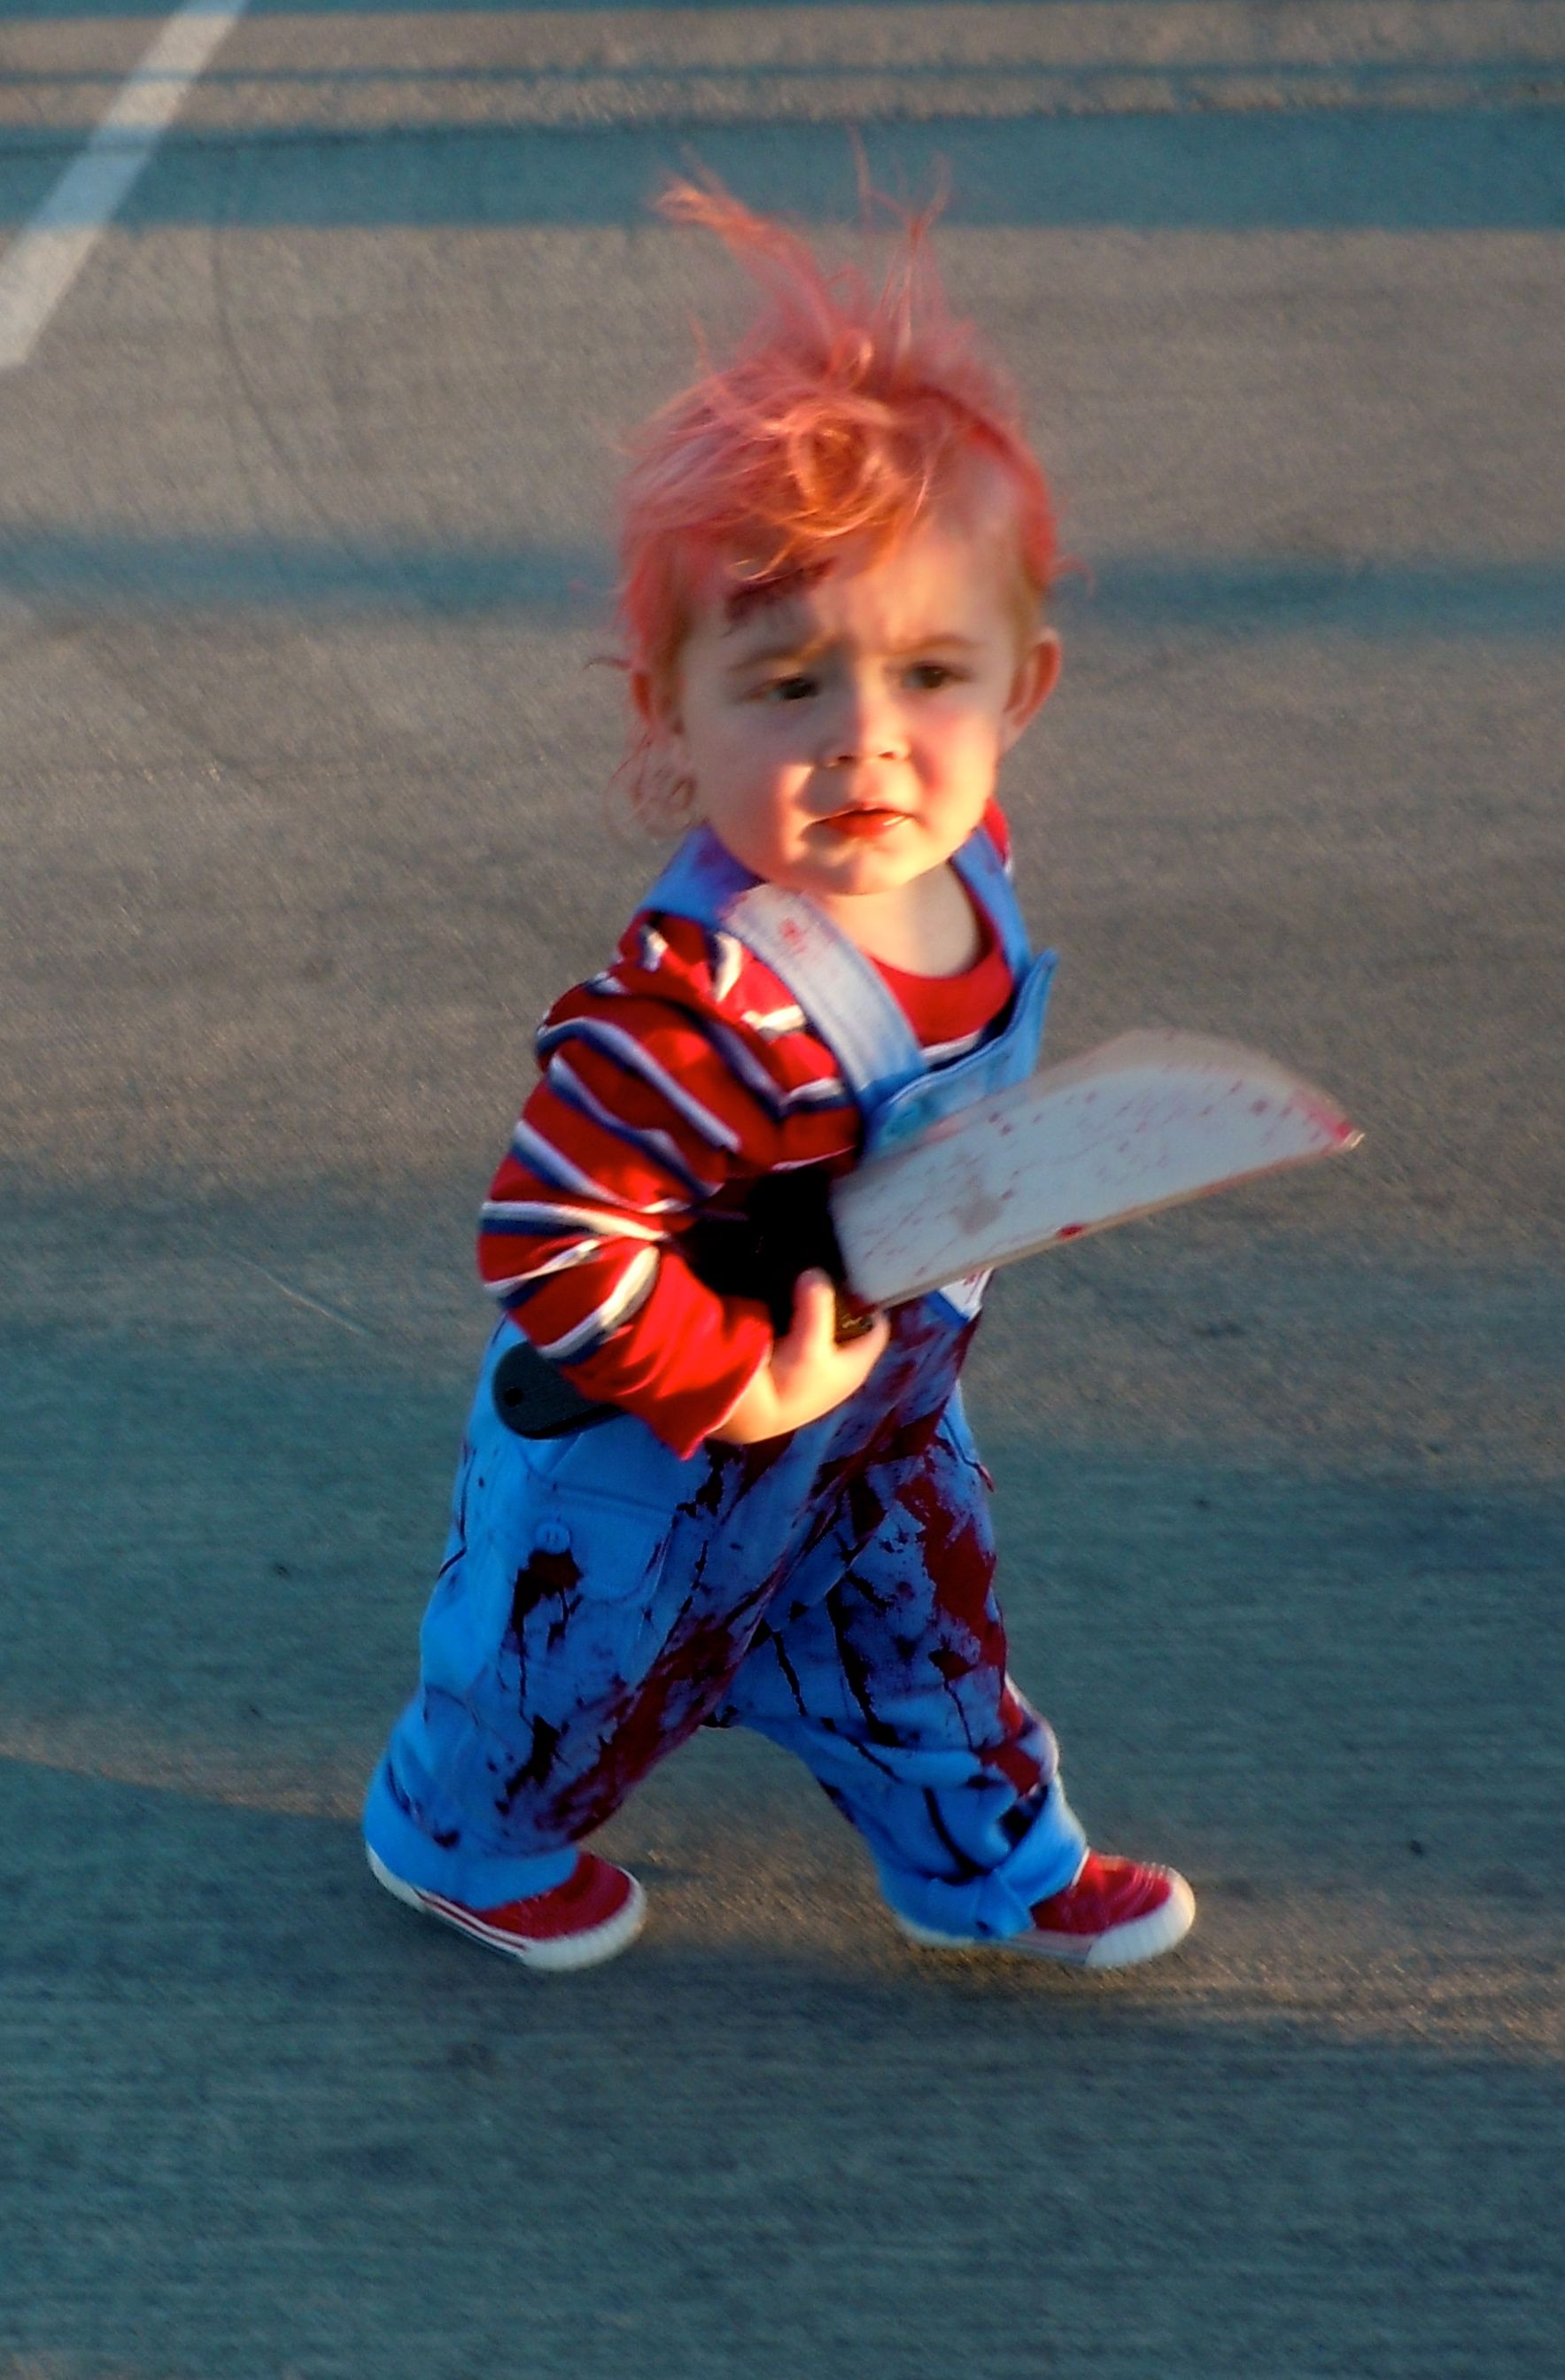 Scary little chucky kids halloween costume kids for 9 year old boy halloween costume ideas